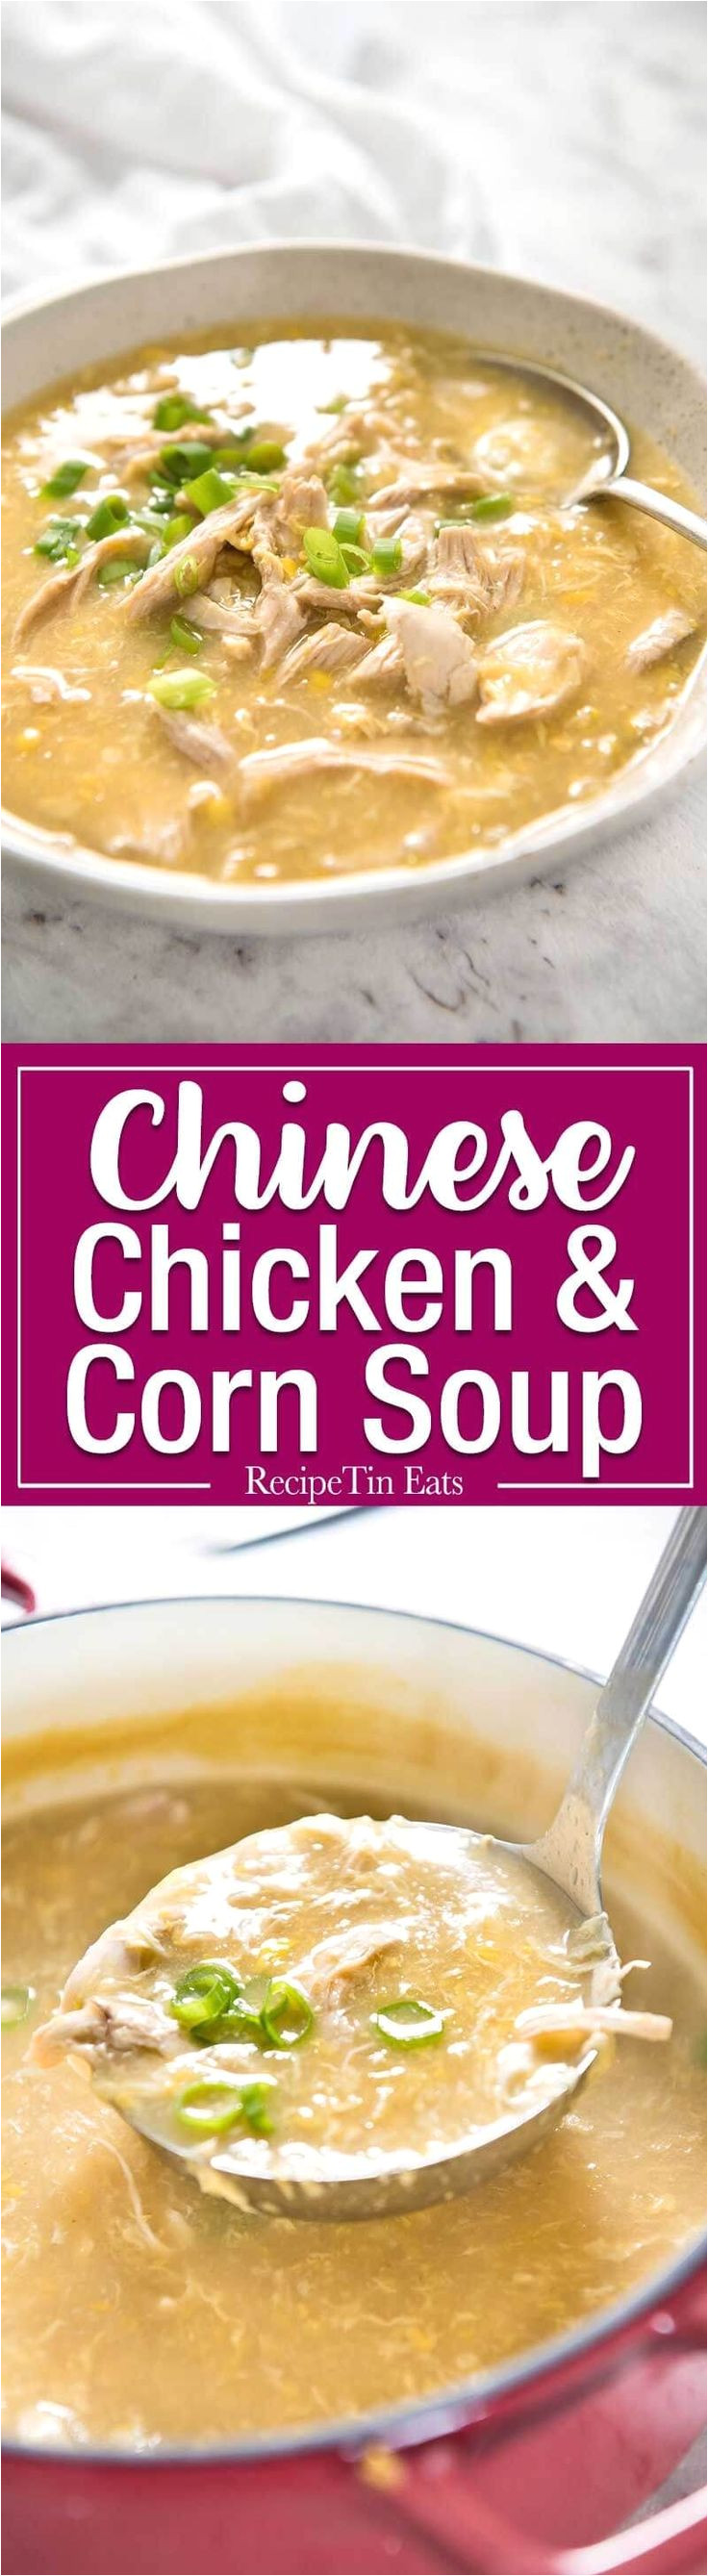 chinese chicken and corn soup